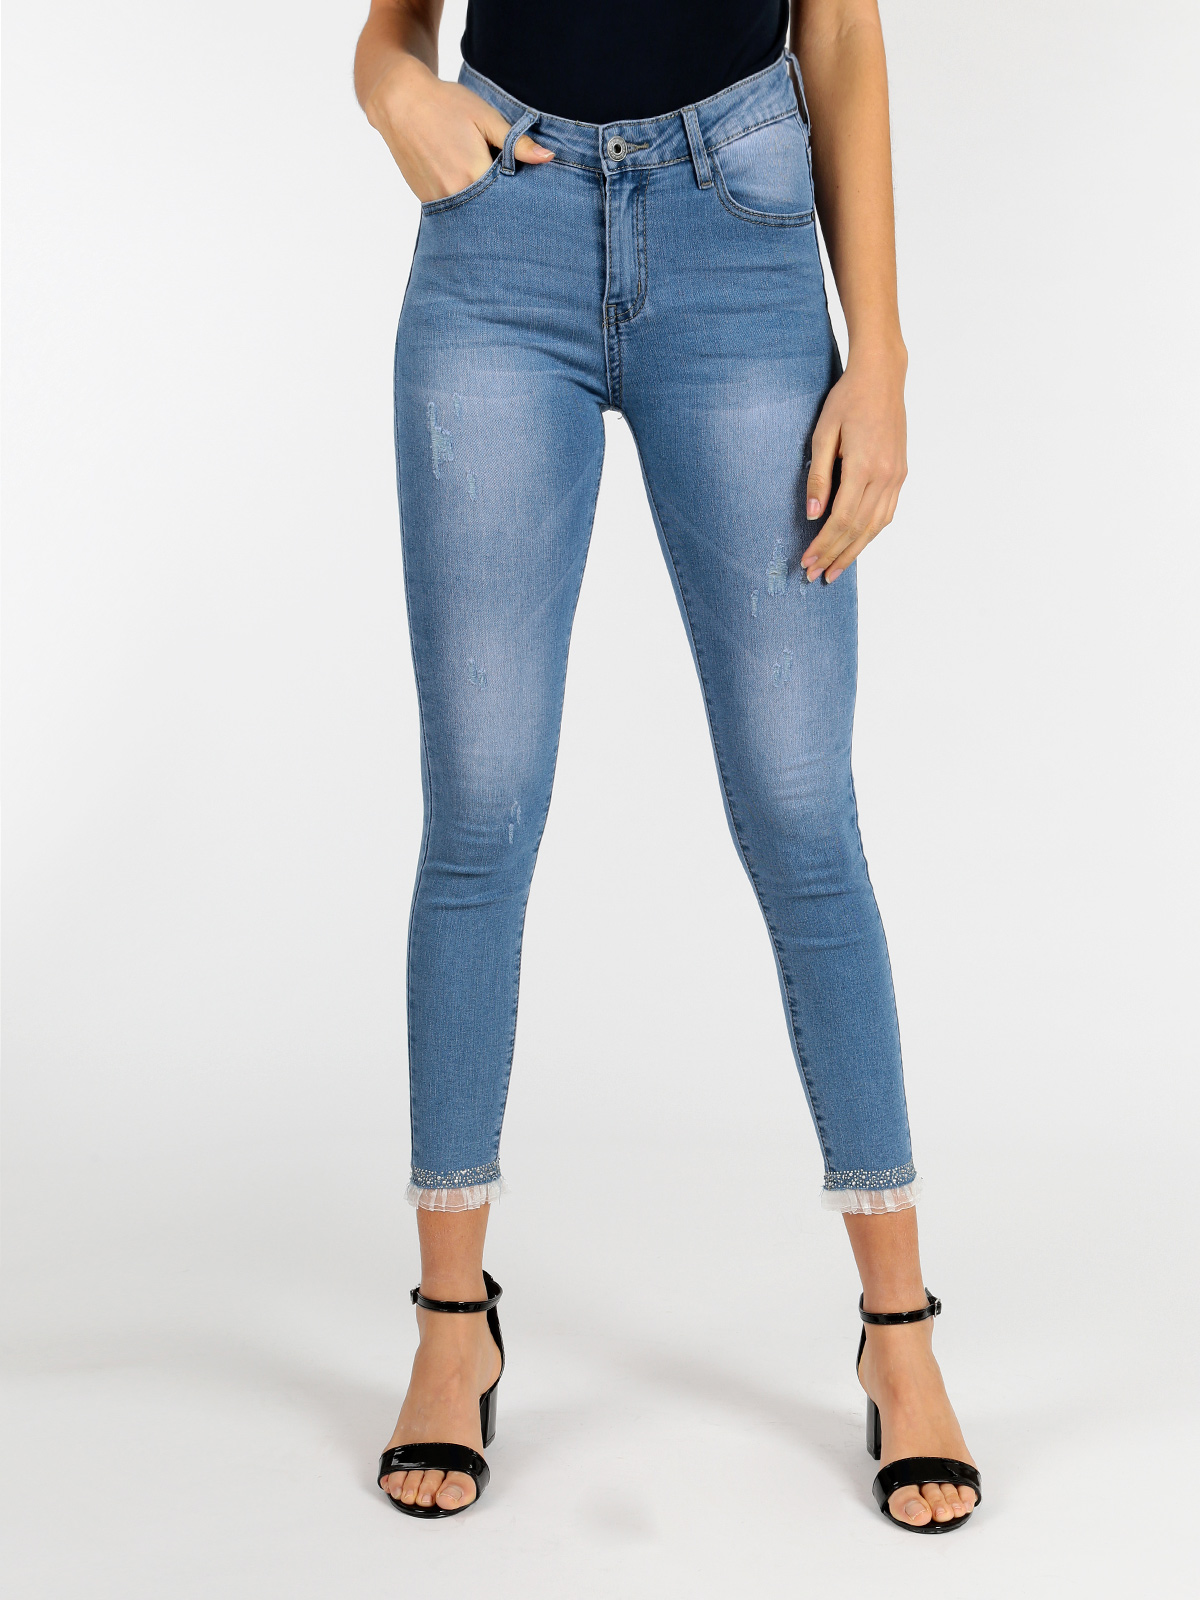 FIONINA   JEANS   skinny   jeans   with rhinestones